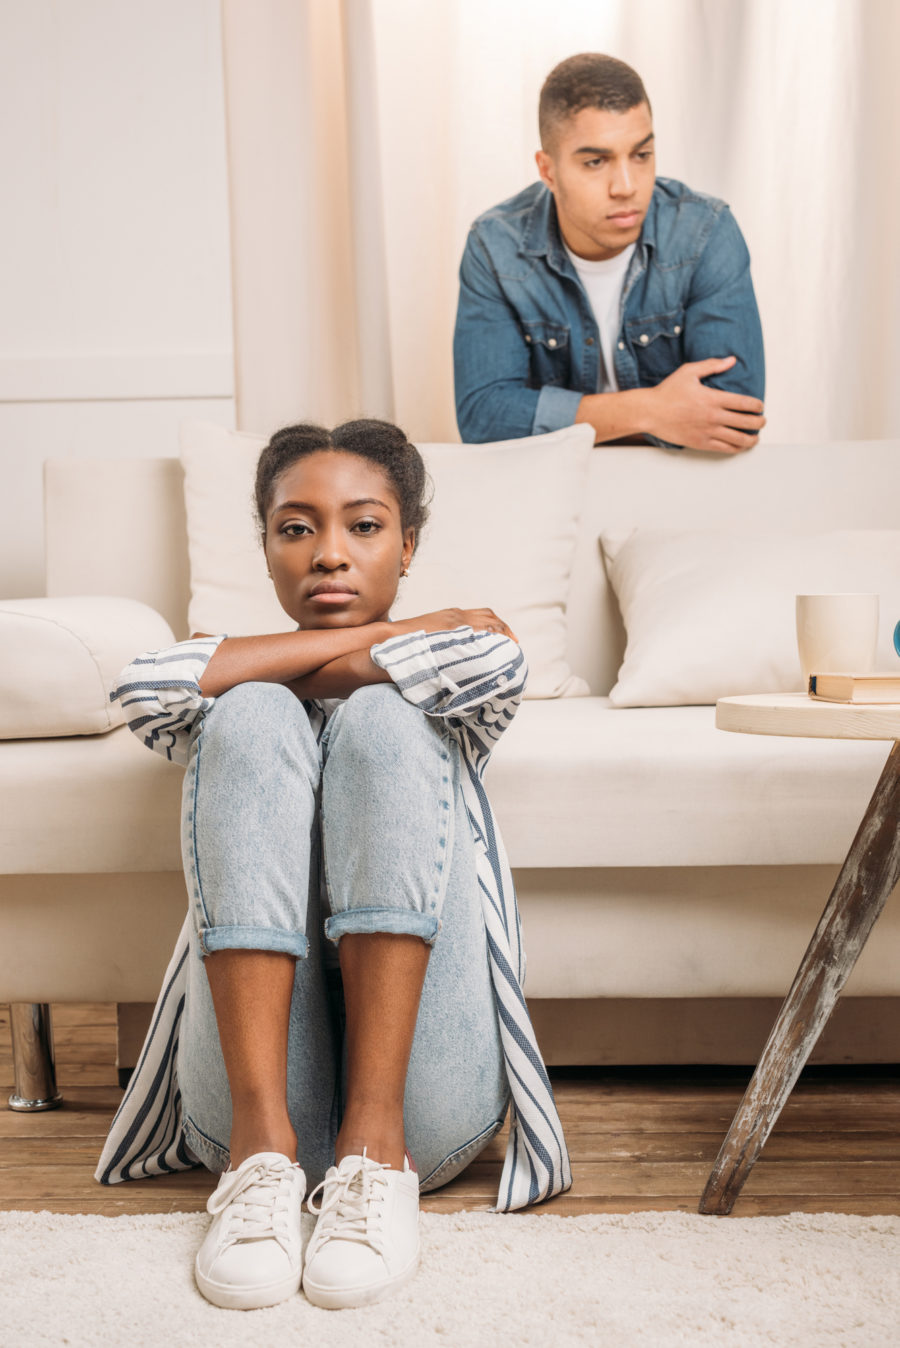 young couple, her sitting on the floor and him standing behind a couch; looking away. Healthy Sexual Relationship